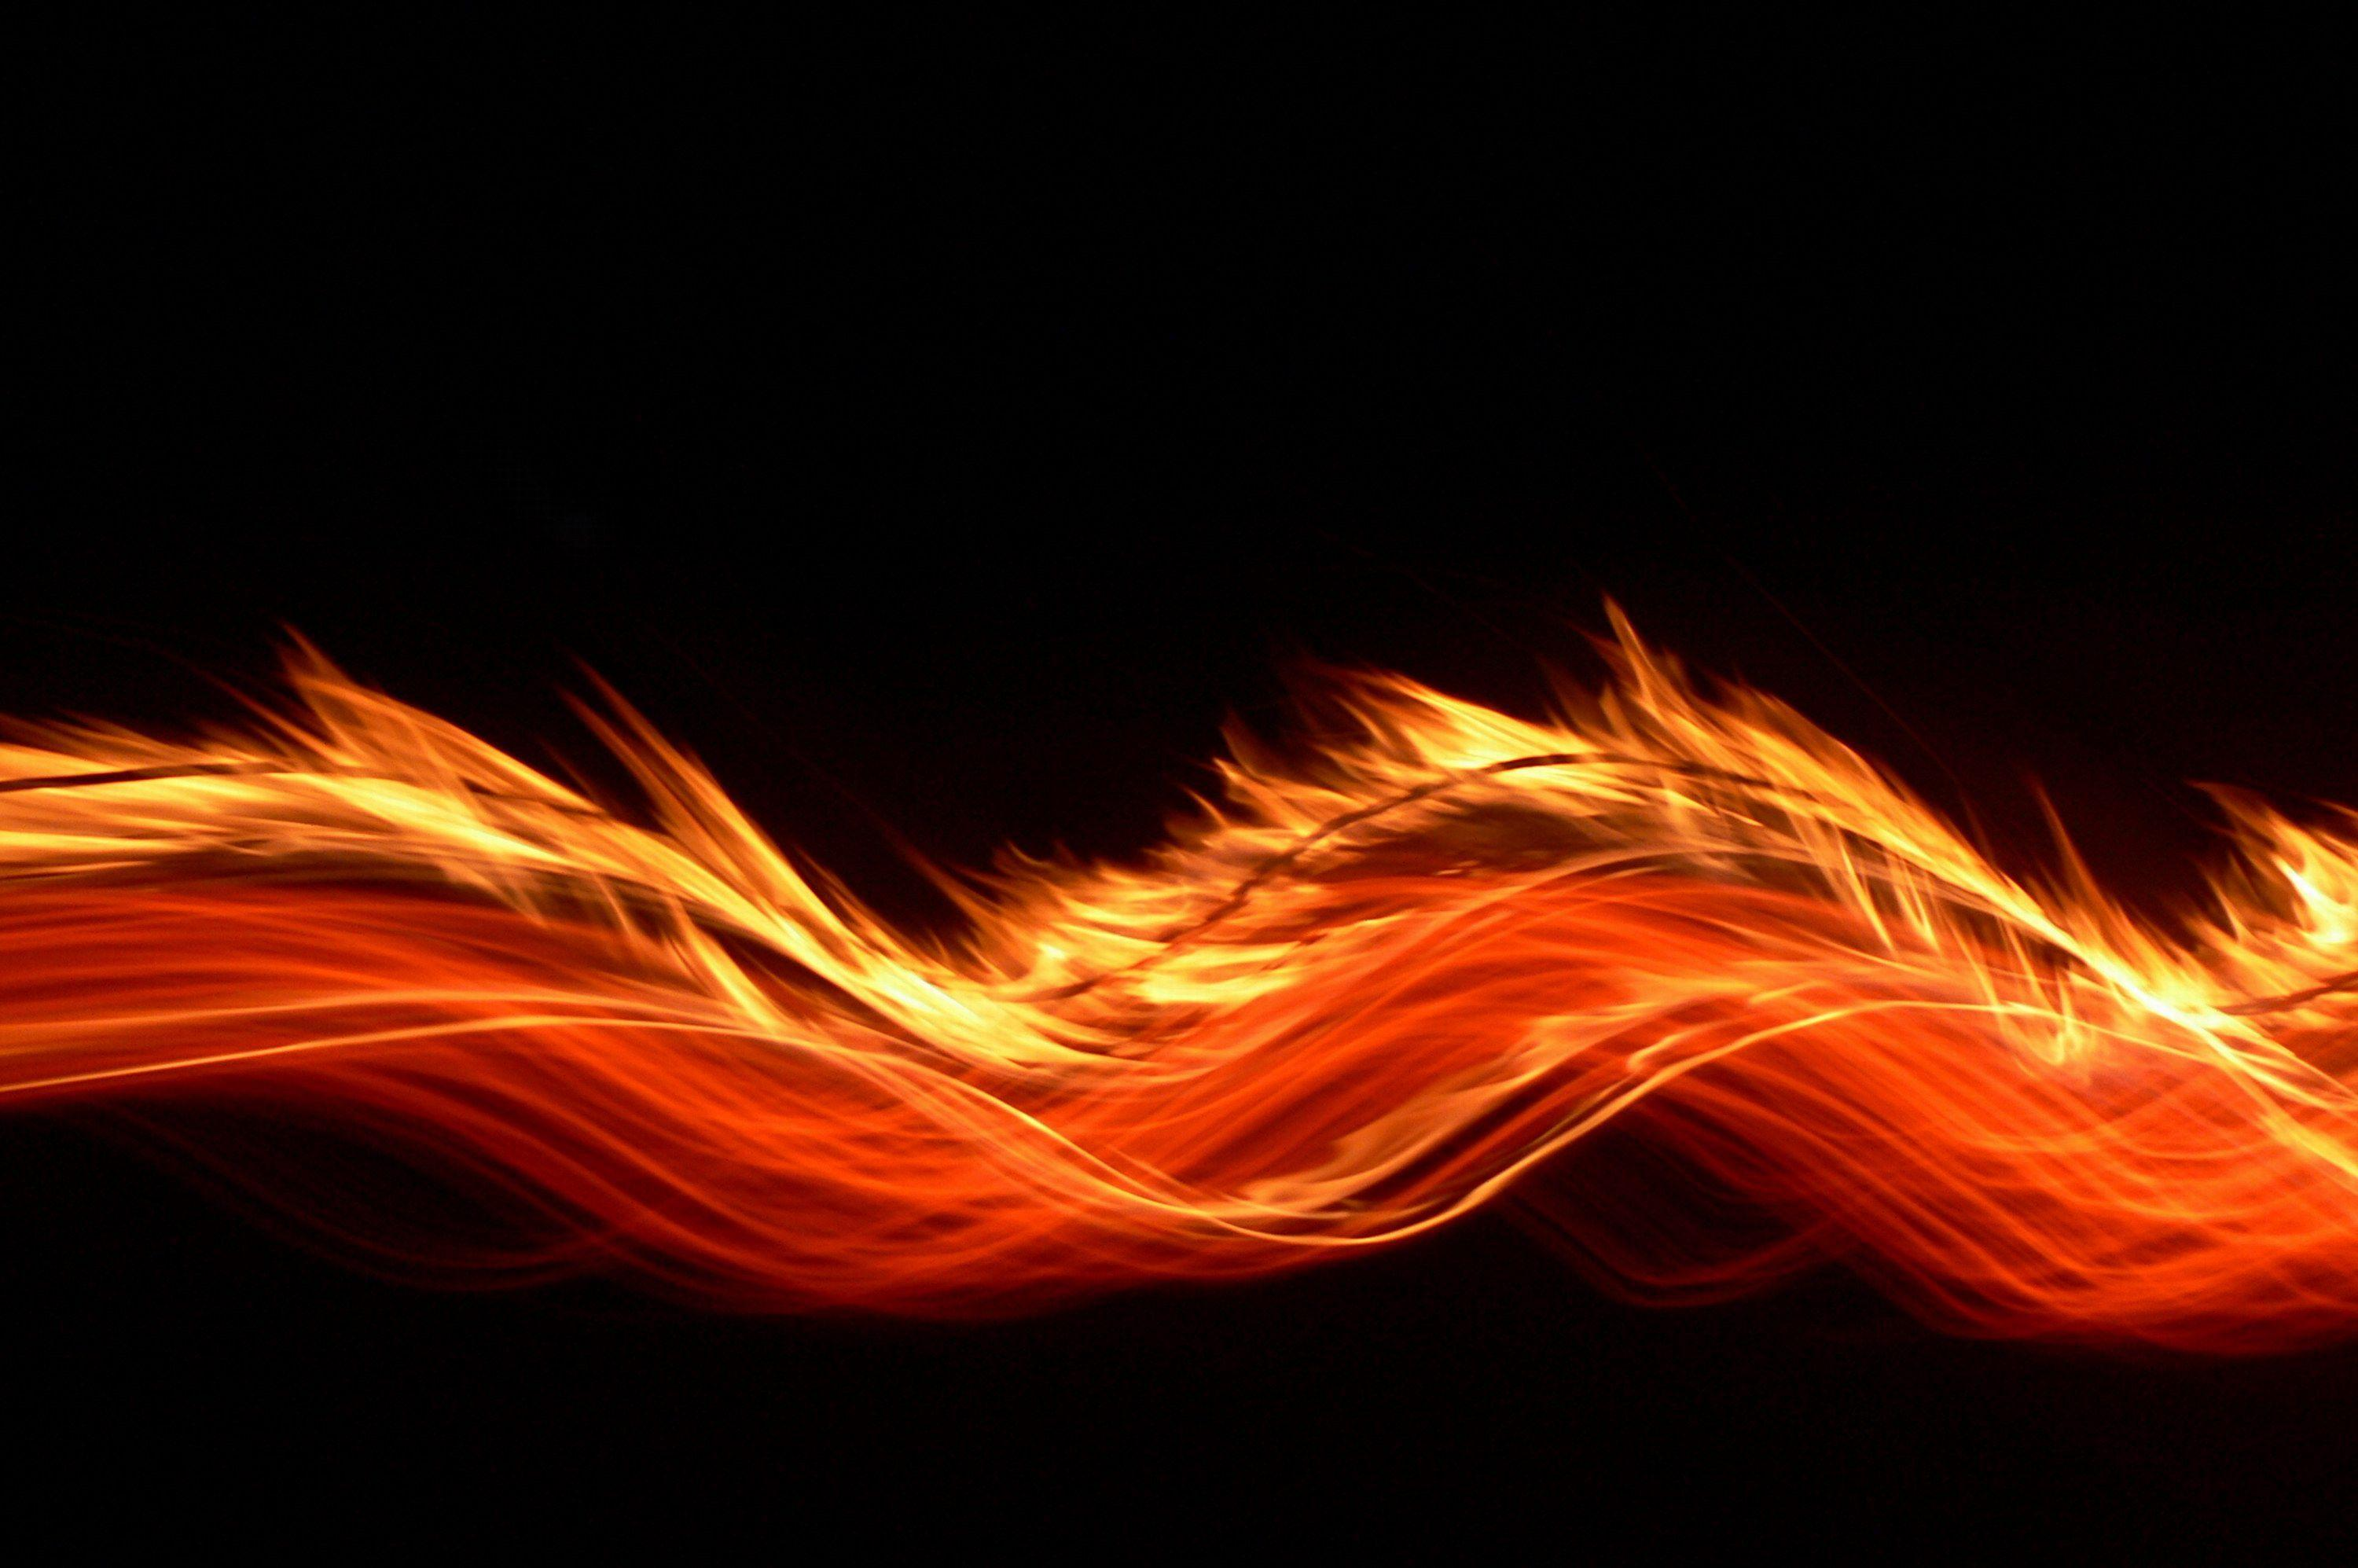 hd wallpapers desktop fire - photo #7